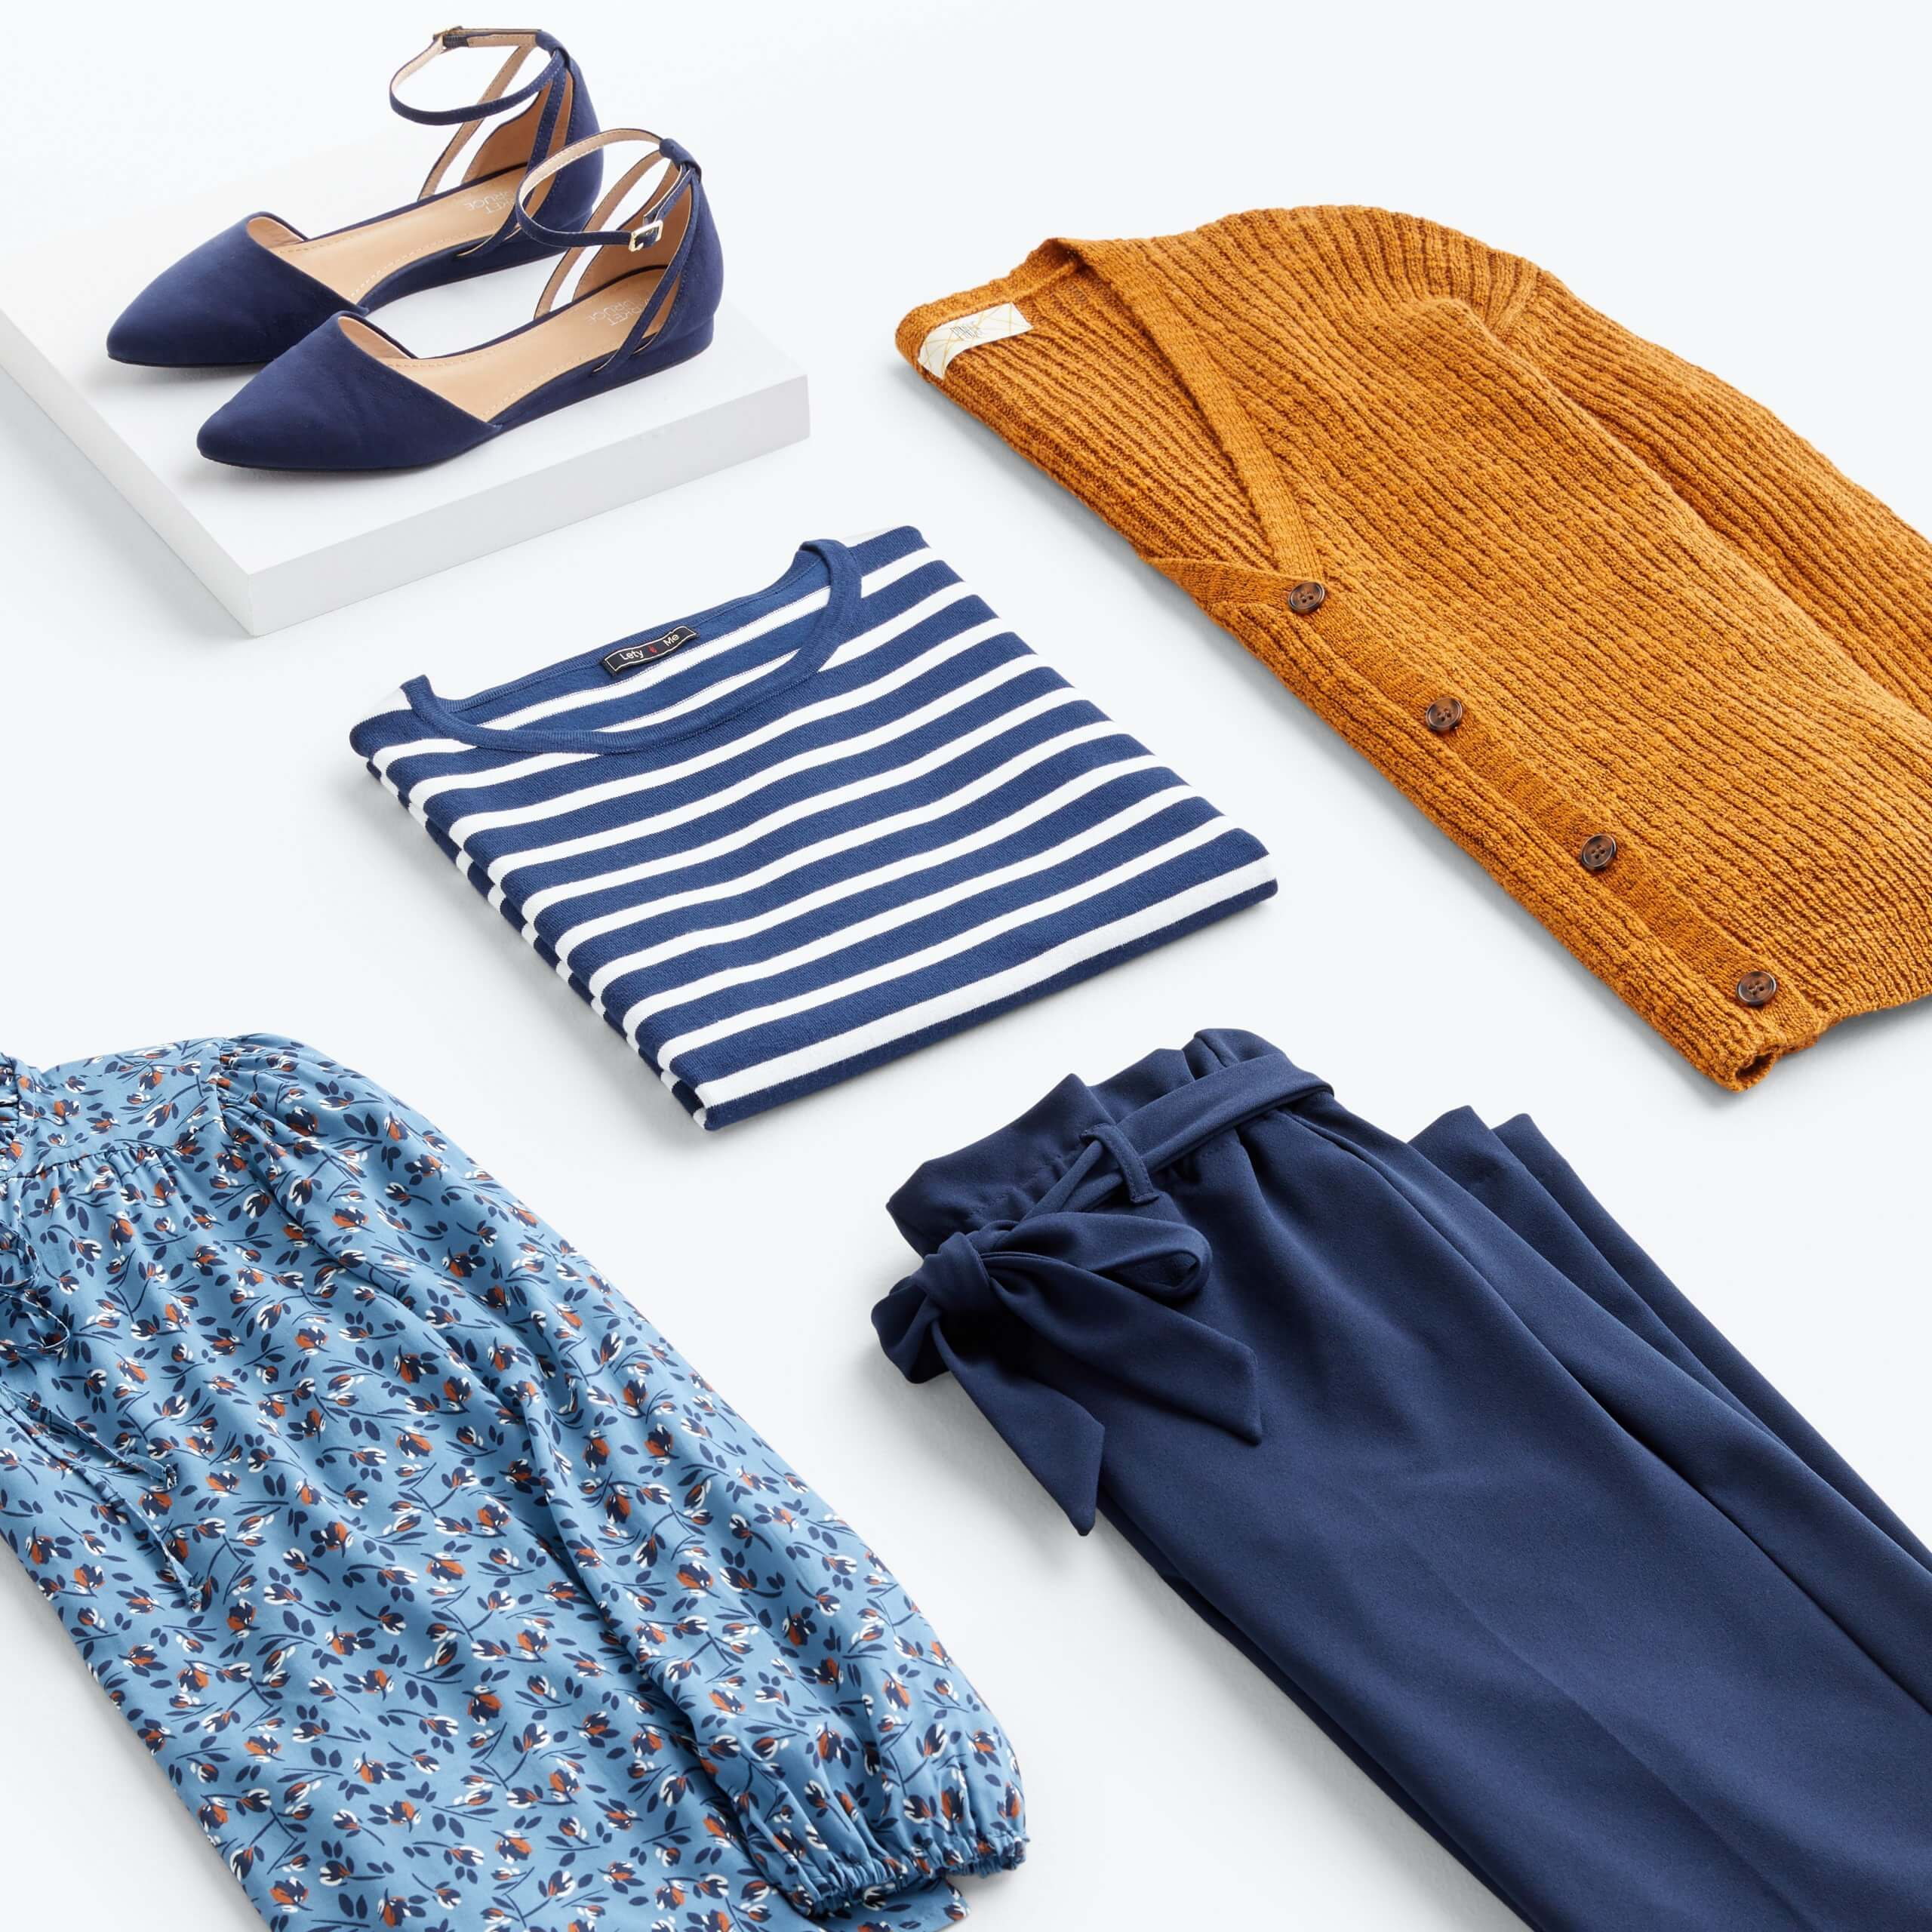 Stitch Fix women's fall 2021 outfit with blue and white striped T-shirt, mustard cardigan, blue floral blouse, navy pants and flats.